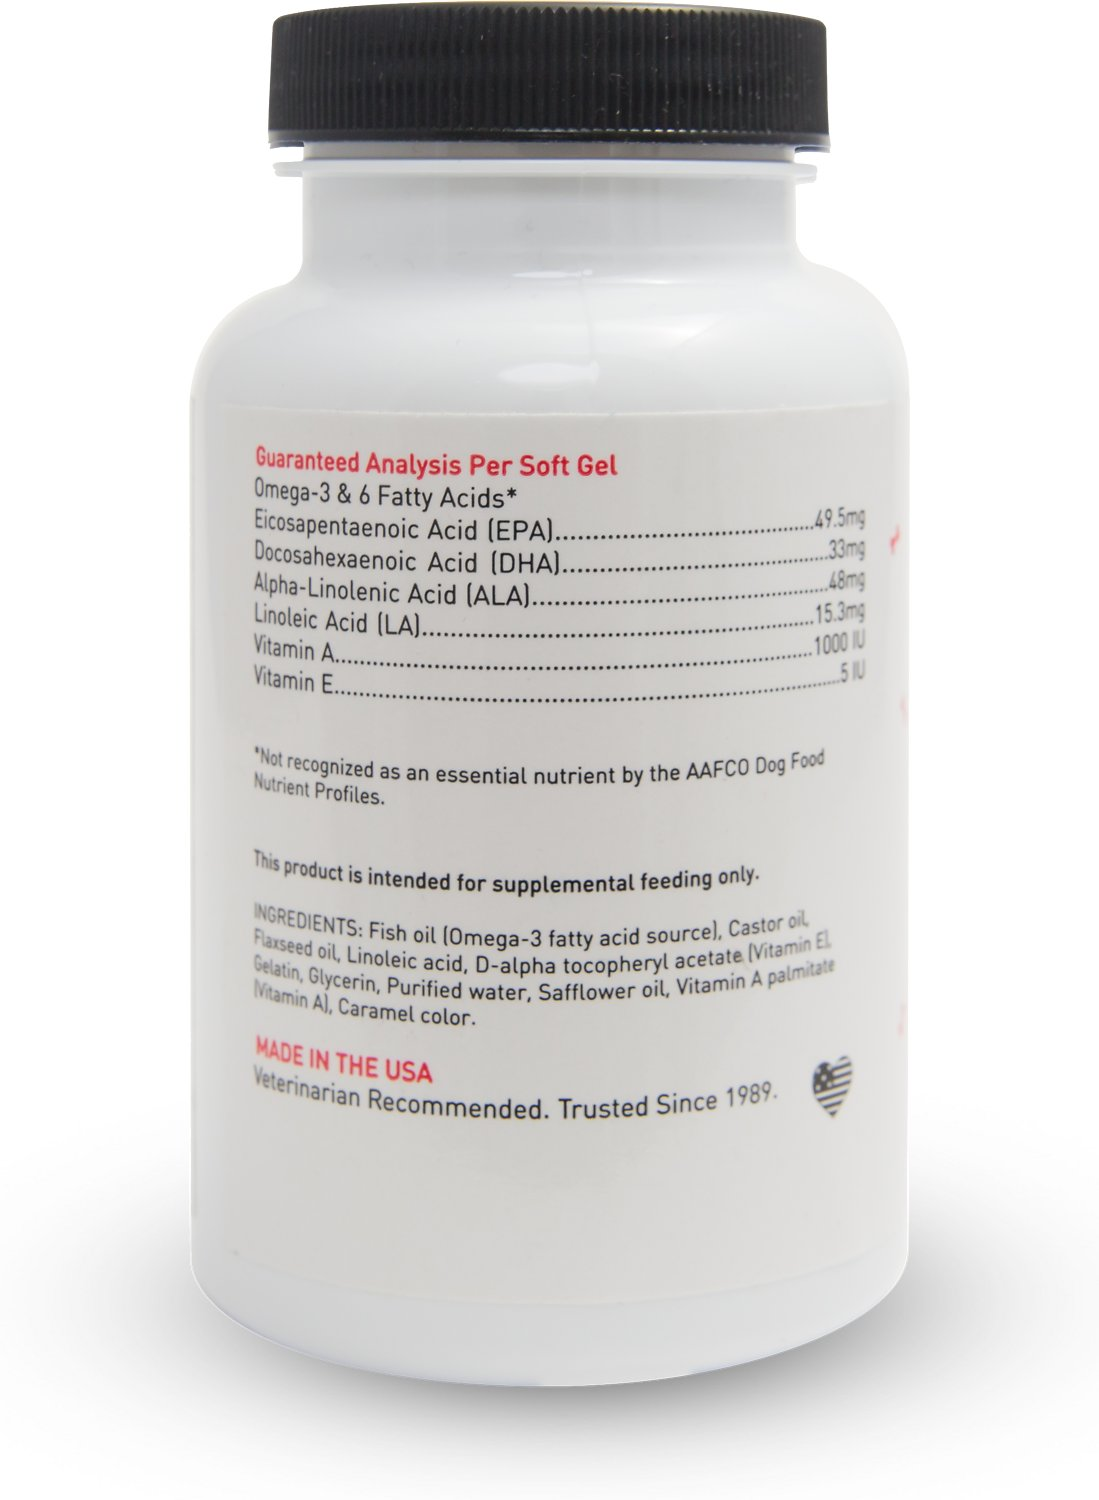 International veterinary sciences lipiderm fish oil omega for Omega 3 fish oil for dogs